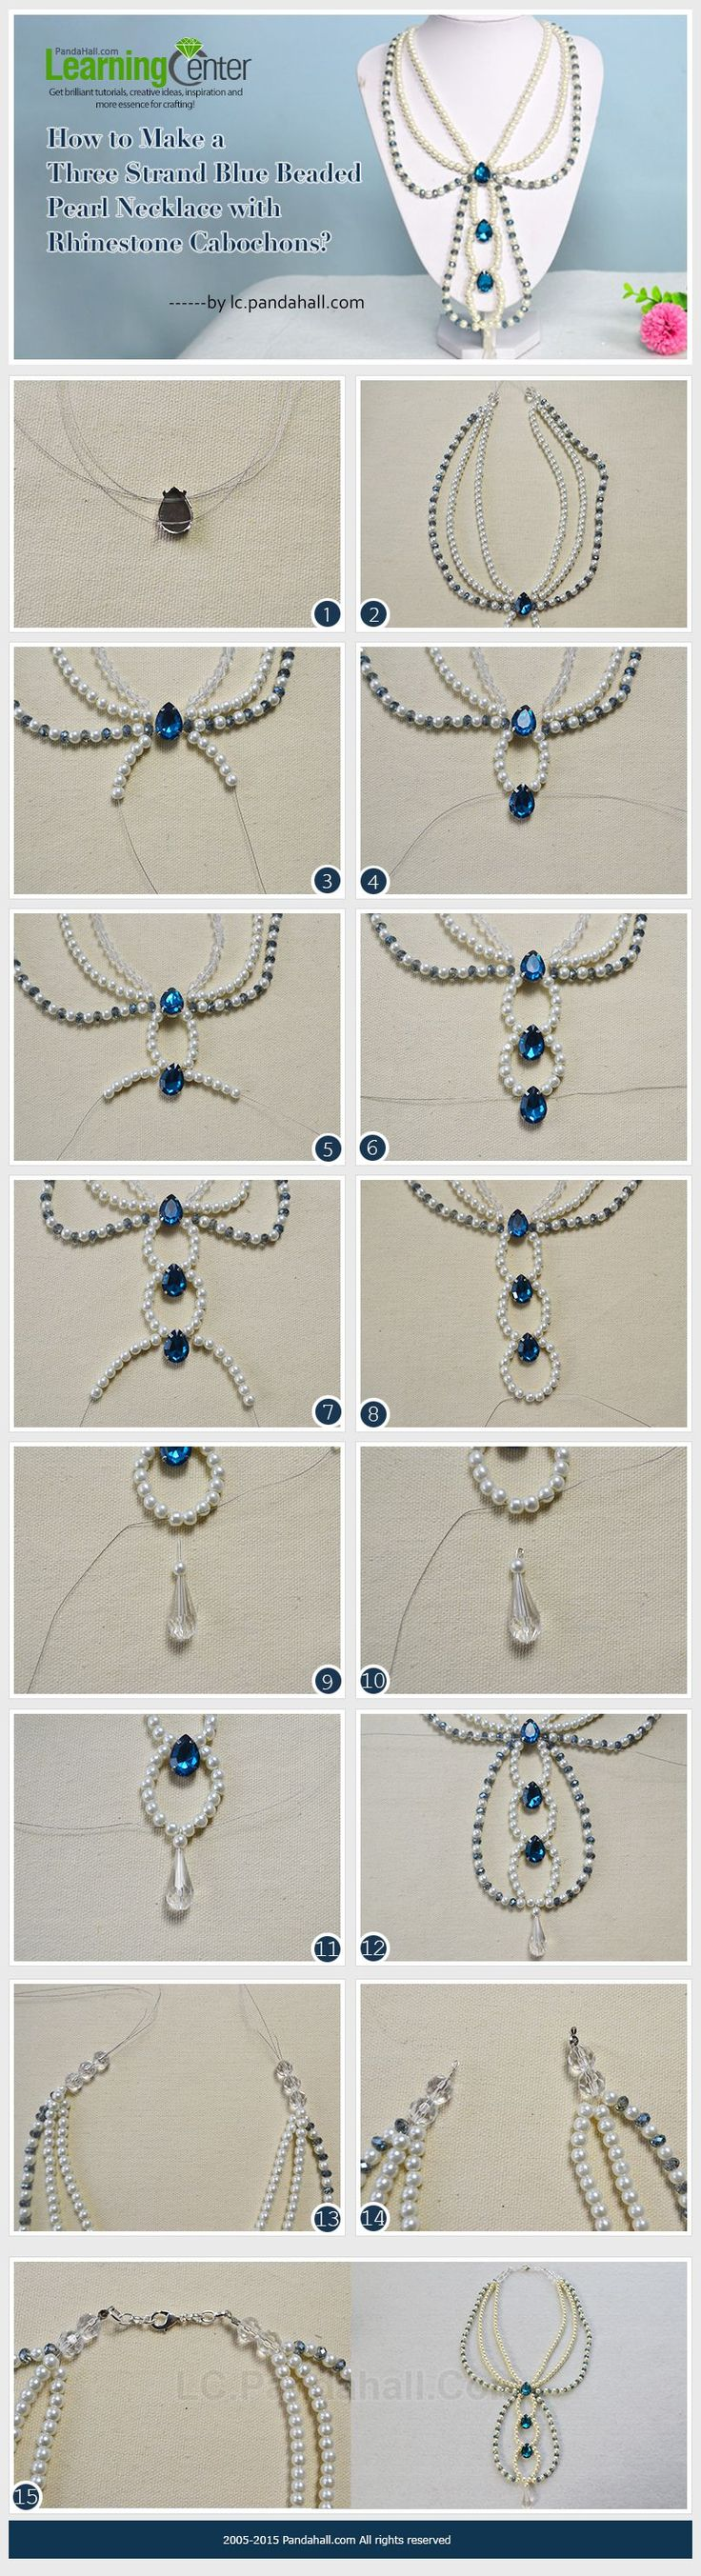 1236 best Necklaces images on Pinterest   Pearl necklaces, Beaded ...